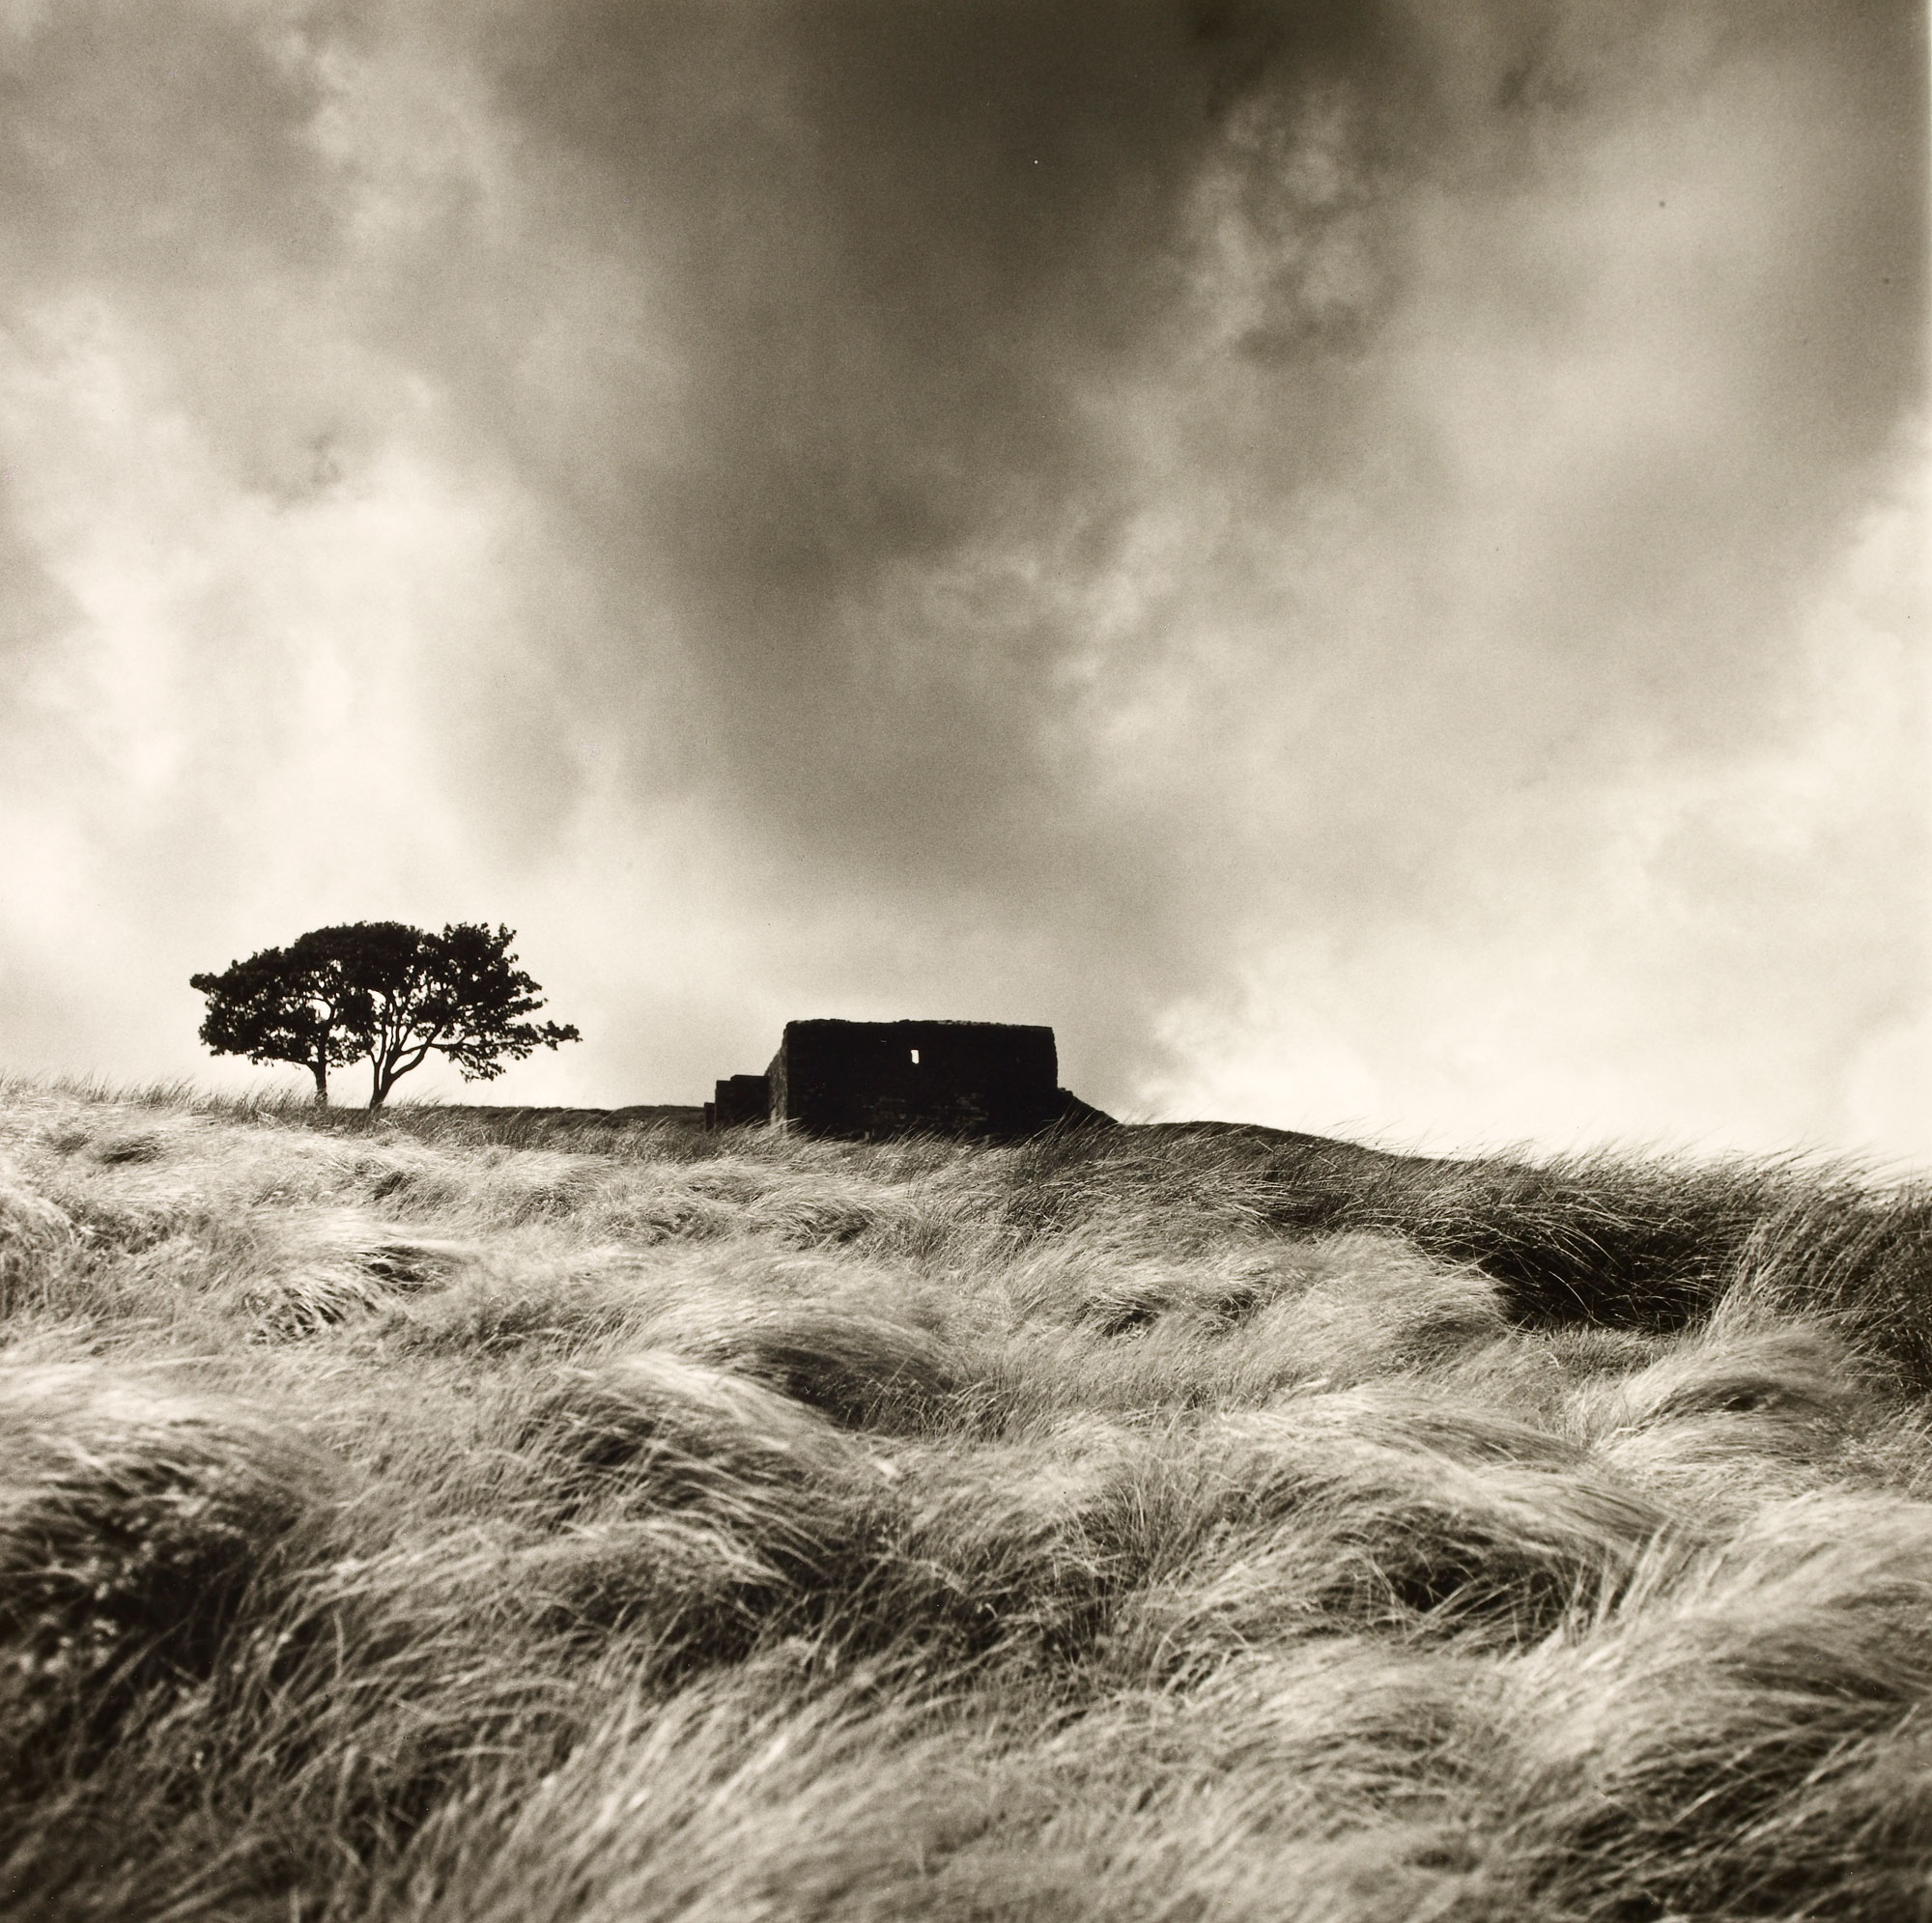 20th century photographs by Fay Godwin of Howarth Parsonage, home of the Brontës, and Top Withens